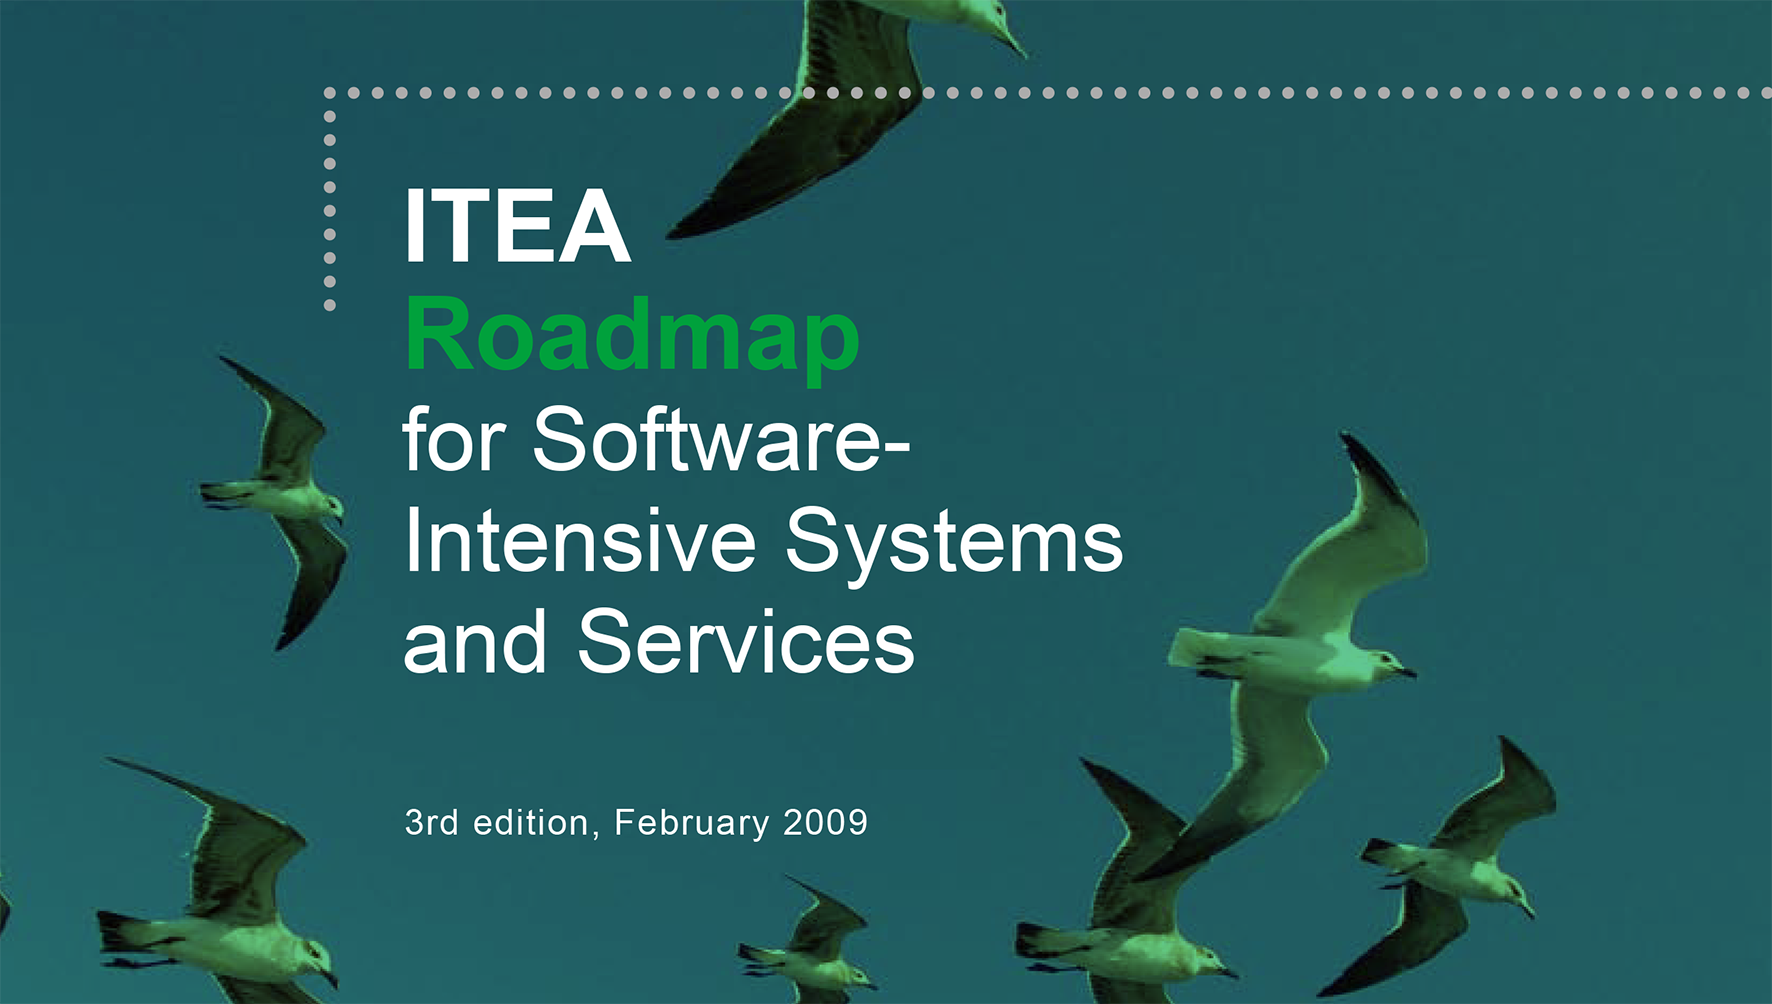 ITEA Roadmap for Software-Intensive Systems &